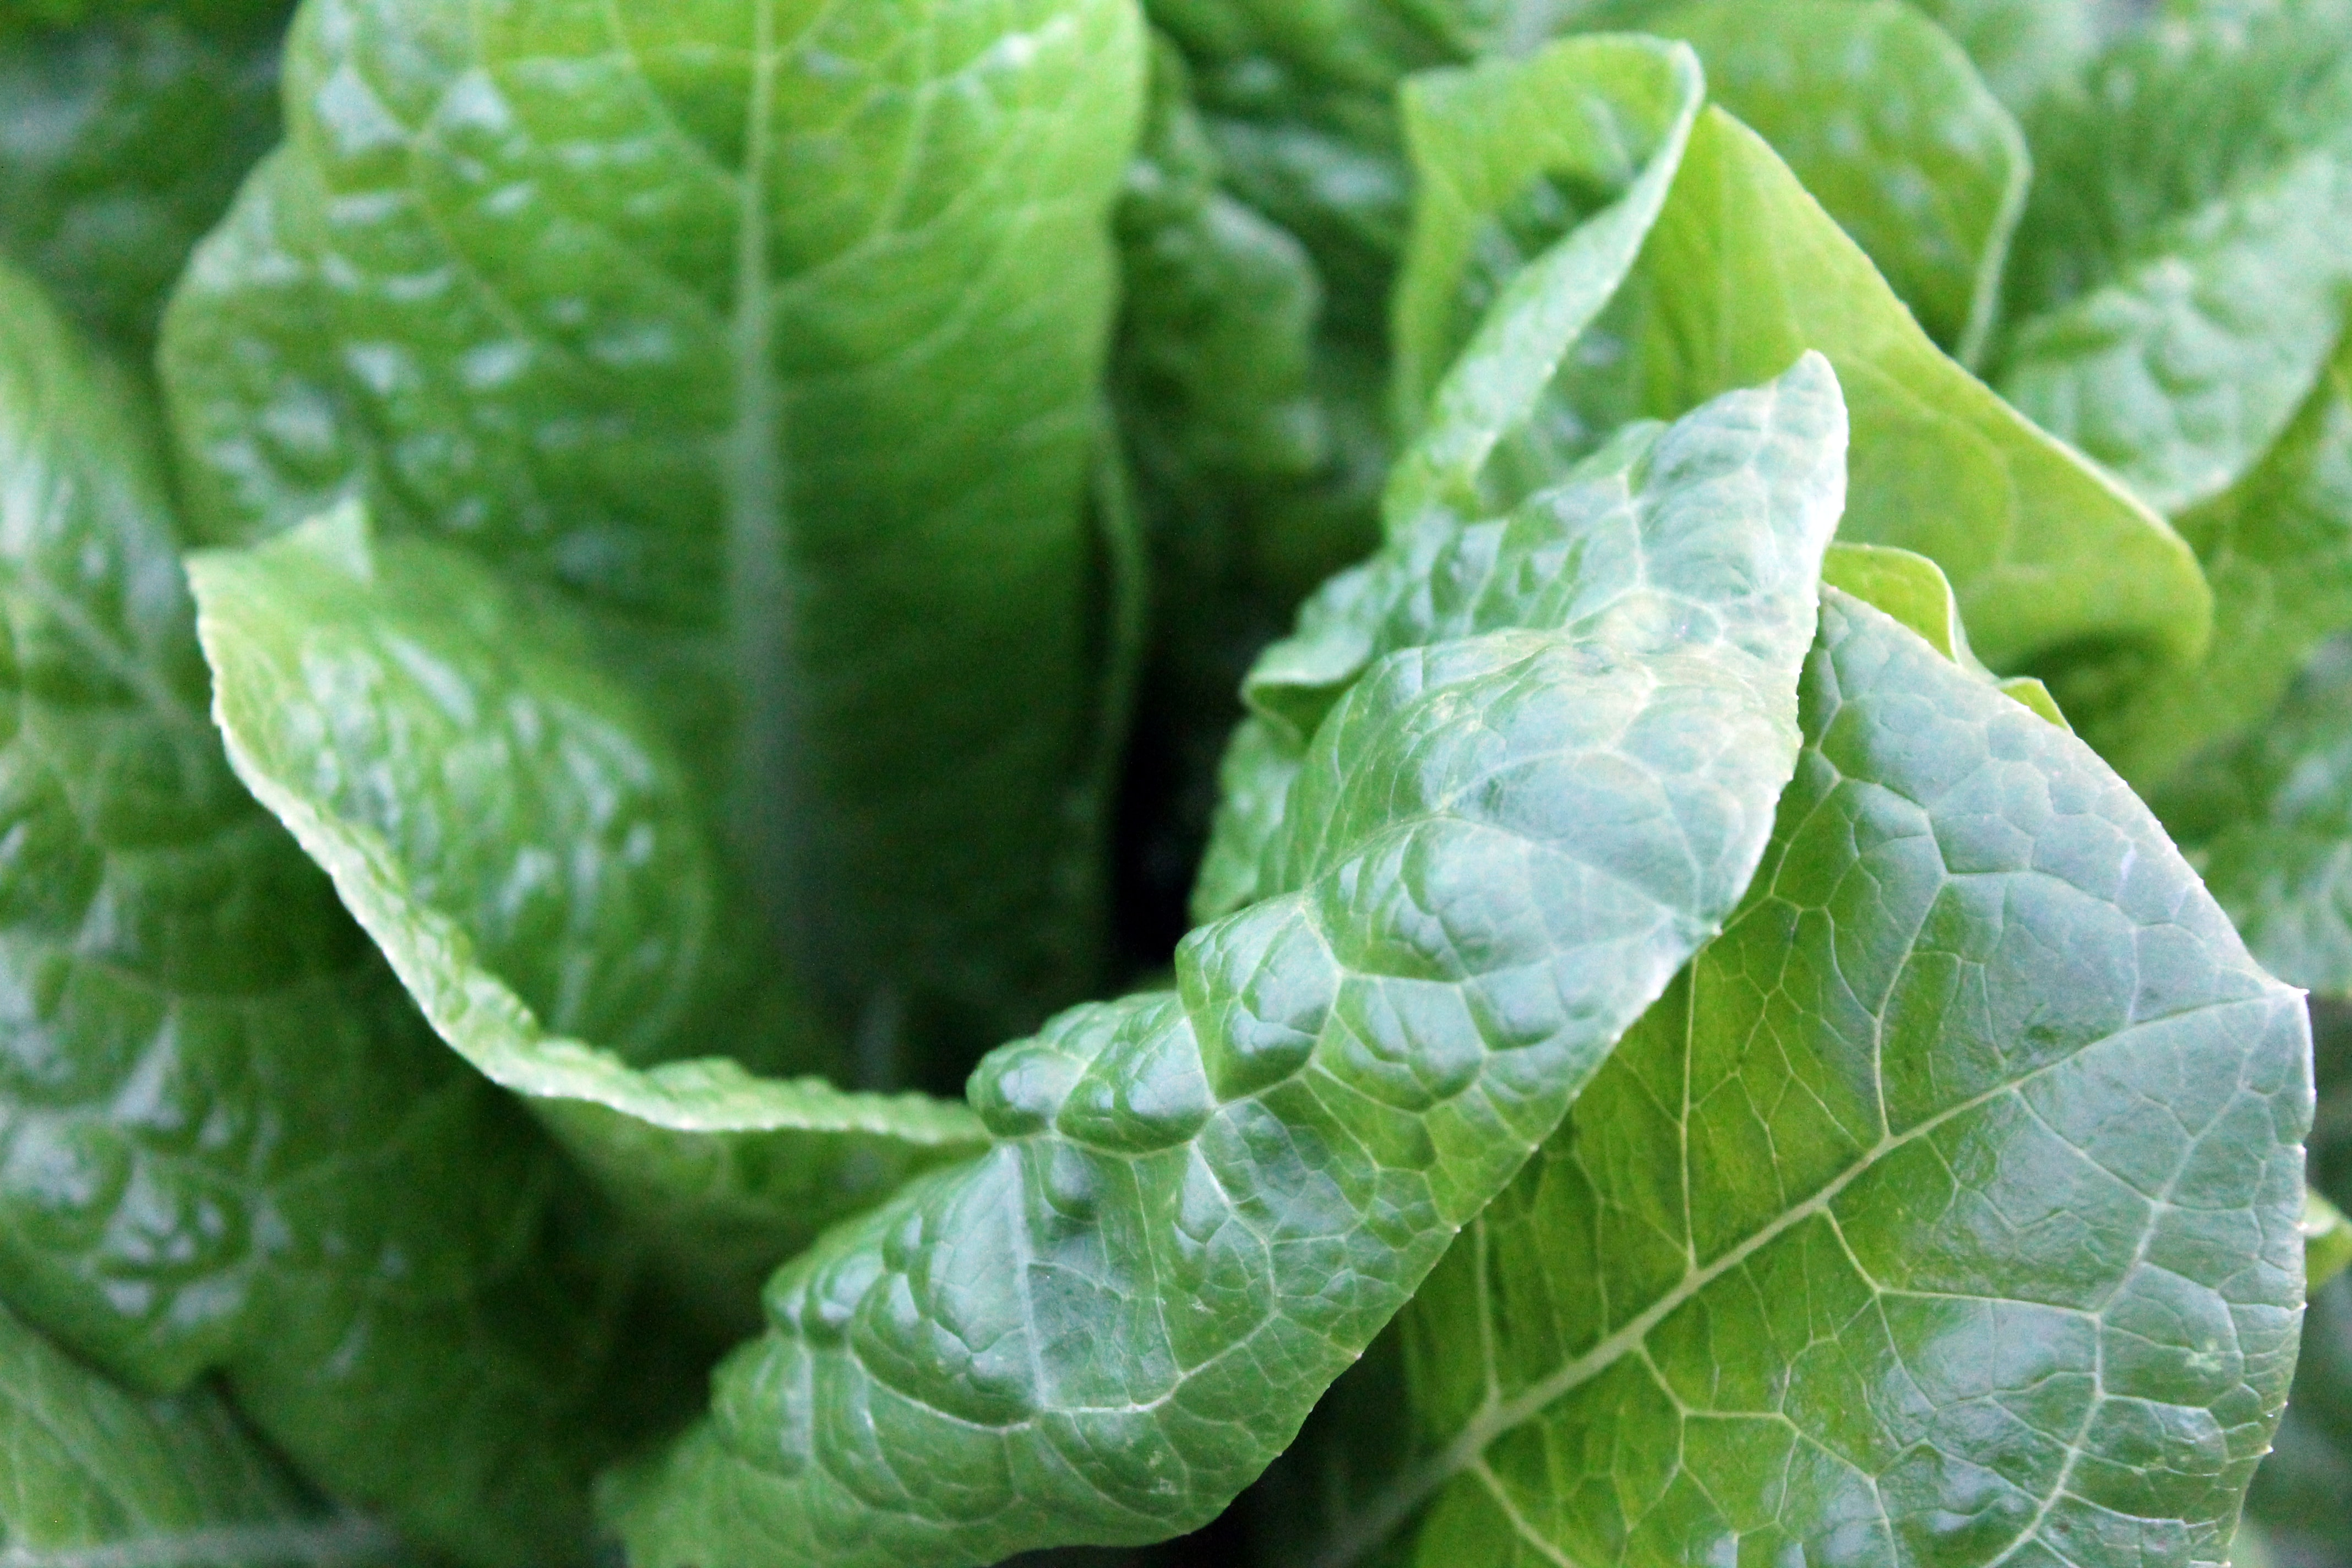 Macro of lettuce leaves in a garden